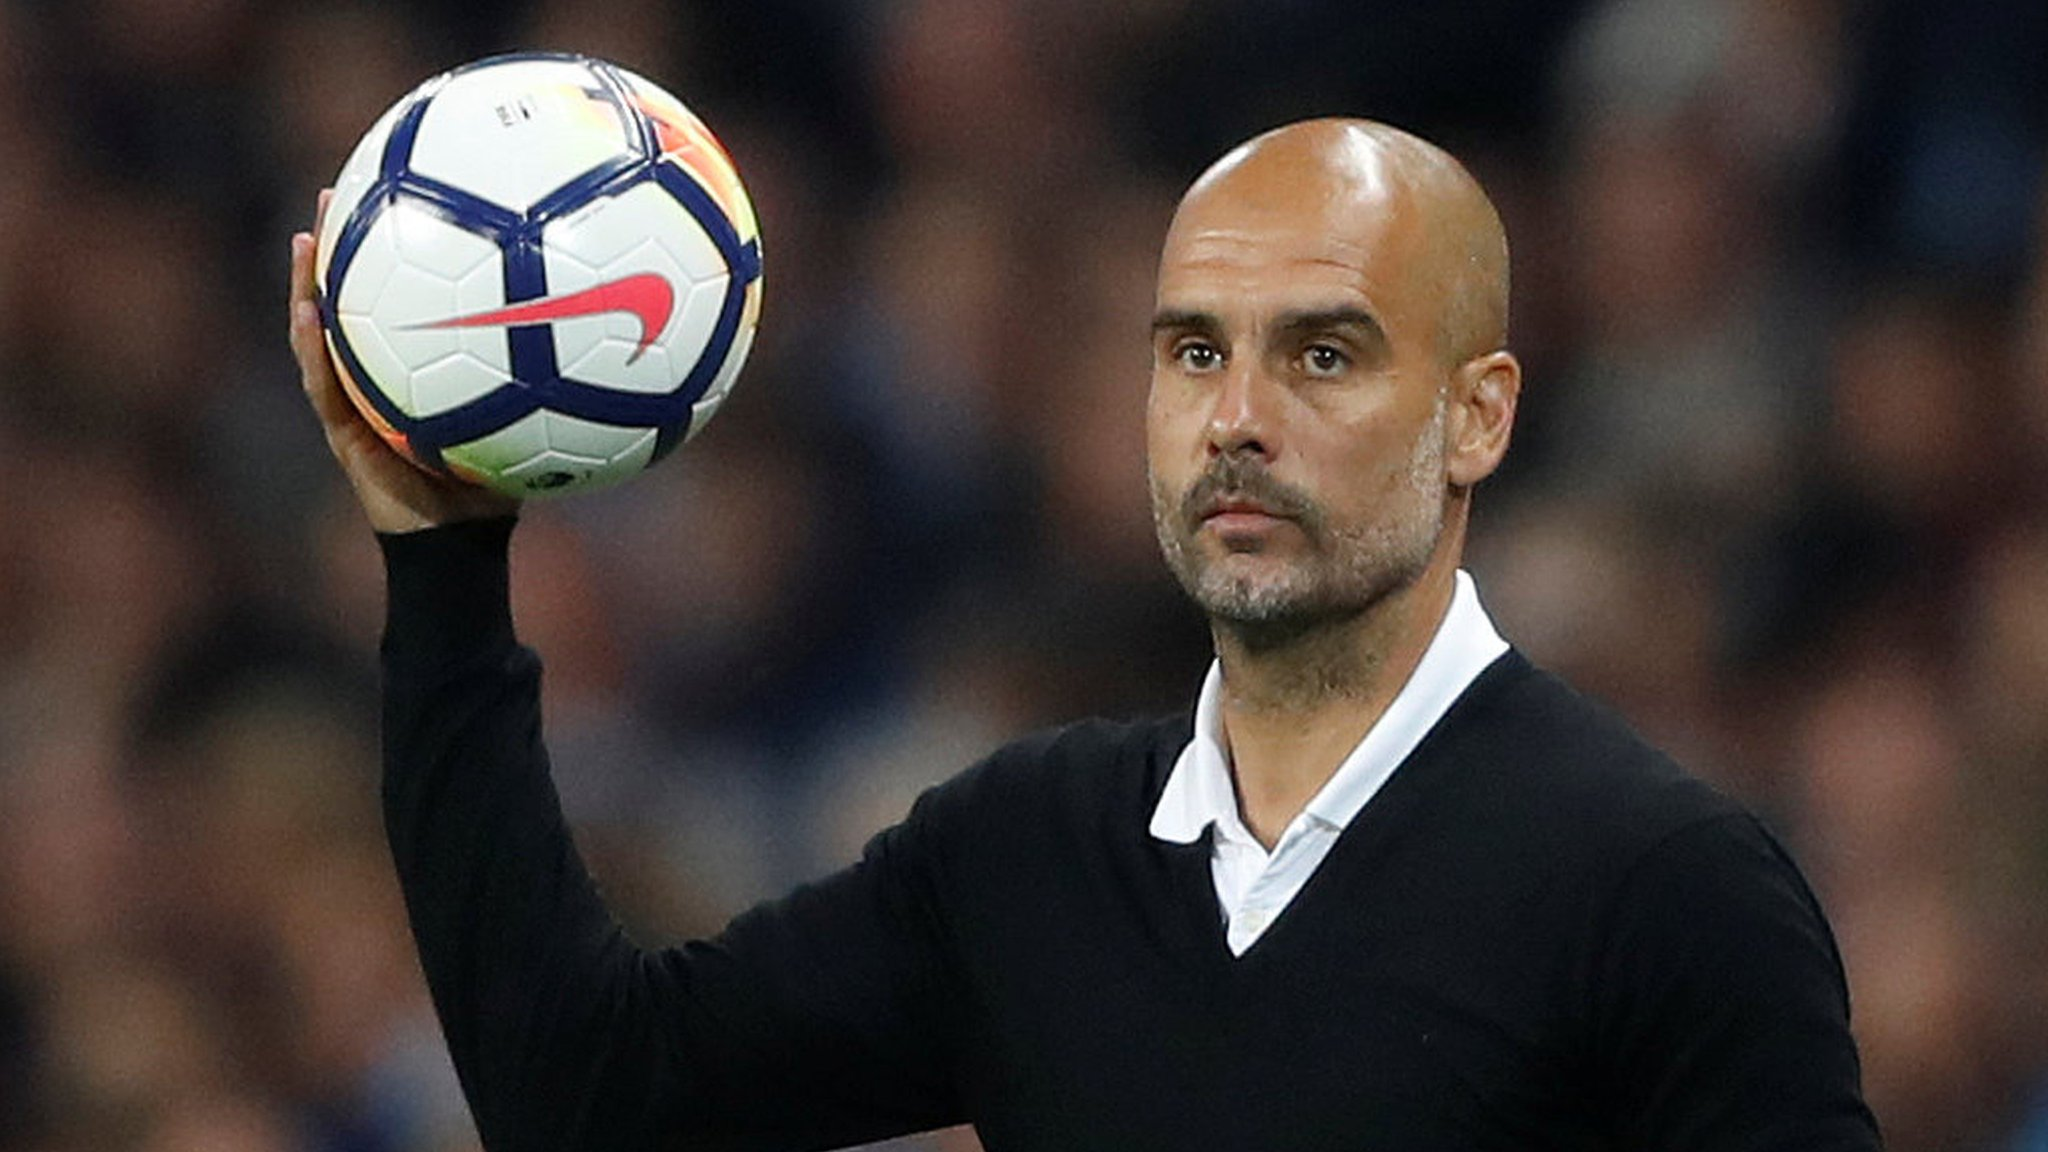 Pep Guardiola: Manchester City boss says Carabao Cup can be 'waste of energy'